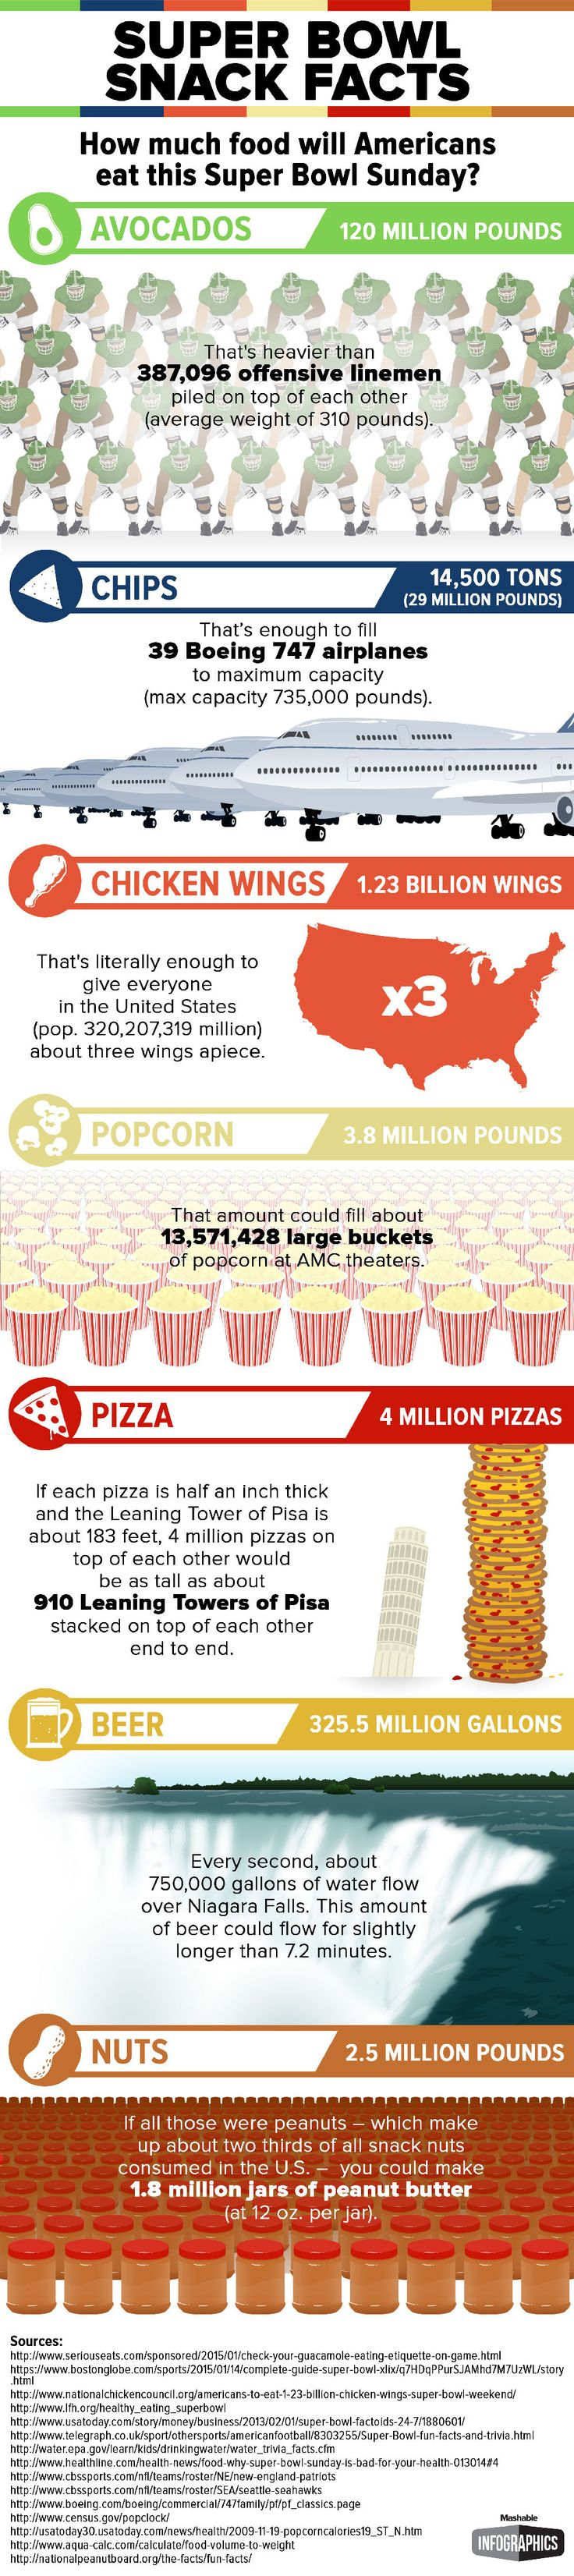 Super Bowl Sunday Food Facts...